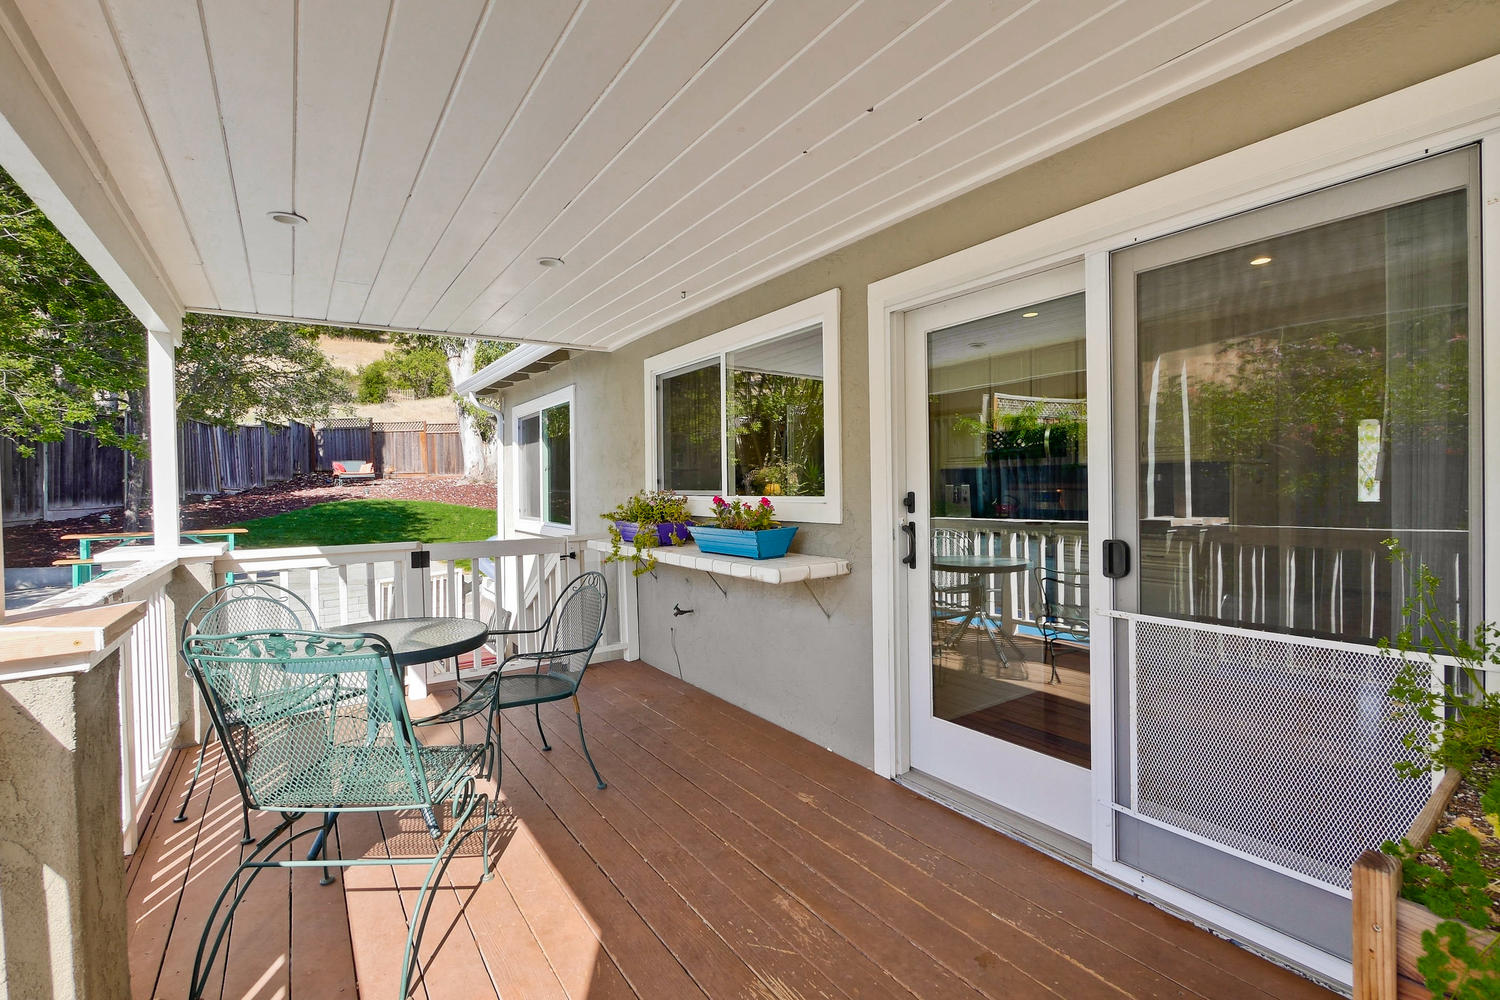 820 Colleen Dr San Jose CA-large-074-21-Deck off Kitchen Overlooking-1500x1000-72dpi